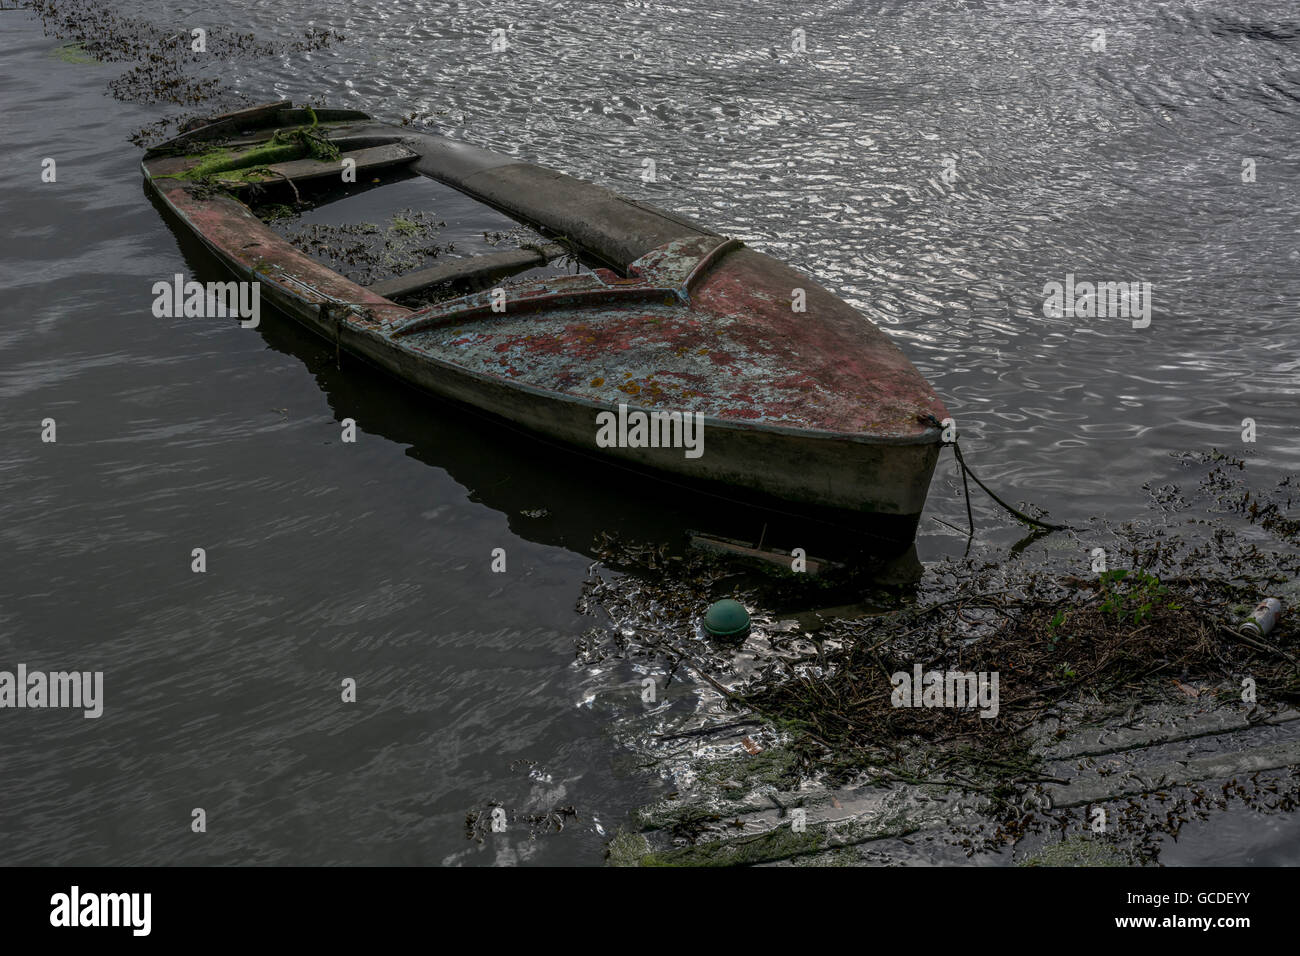 Sinking Ship Concept Stock Photos Amp Sinking Ship Concept